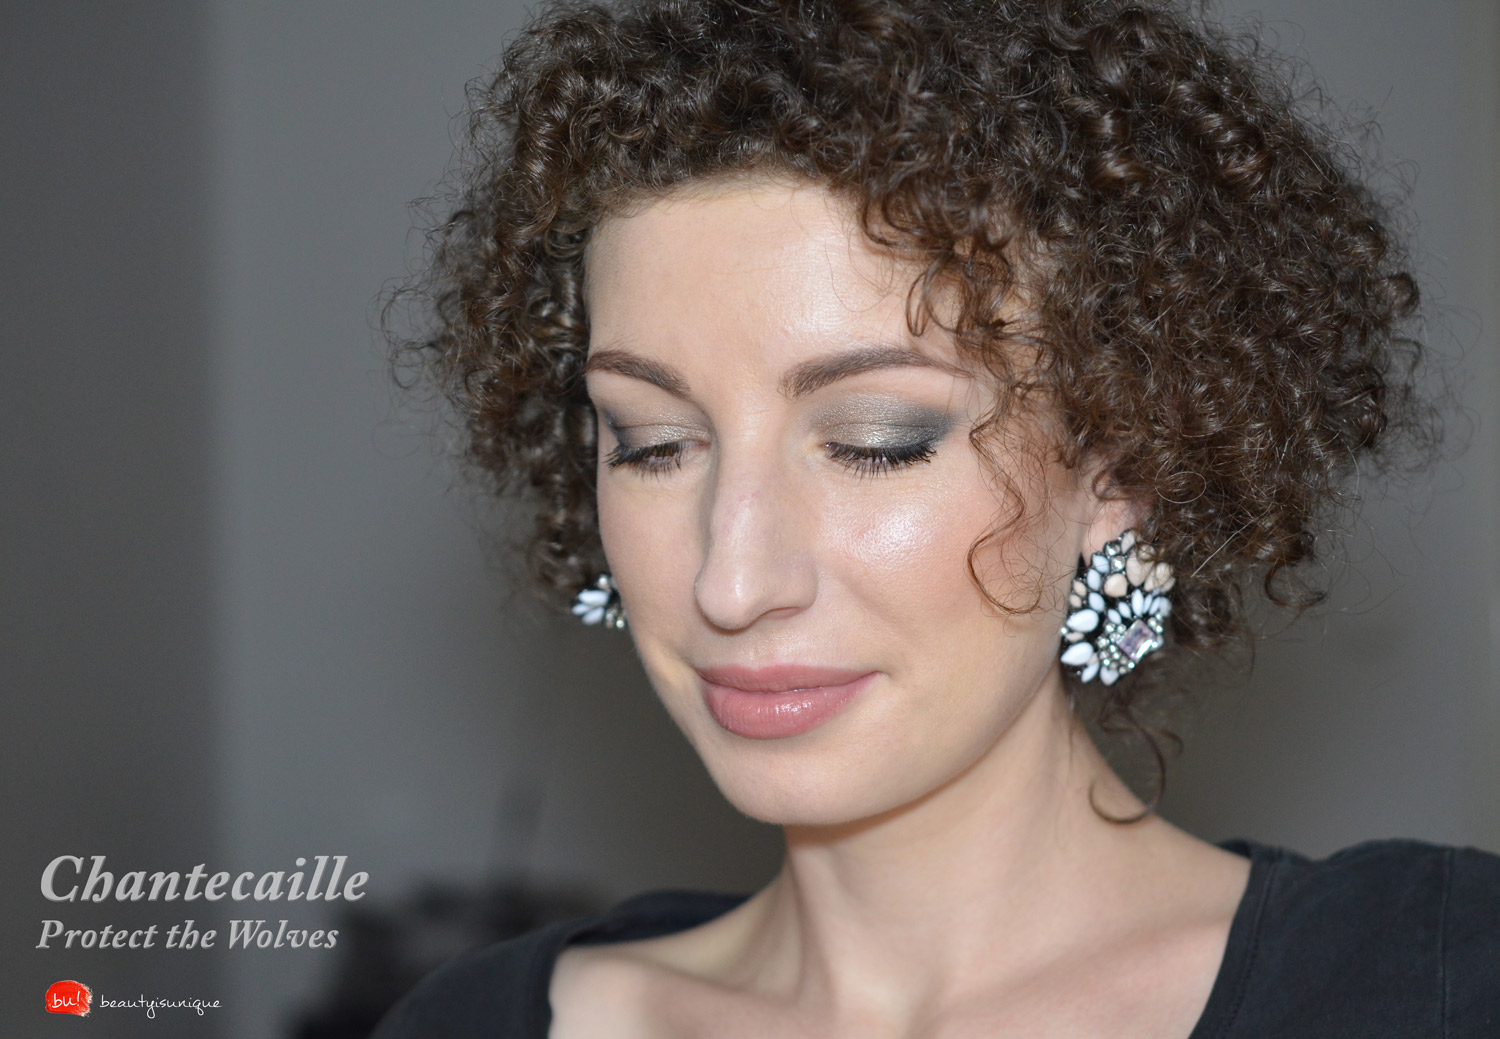 chantecaille-protect-the-wolves-makeup